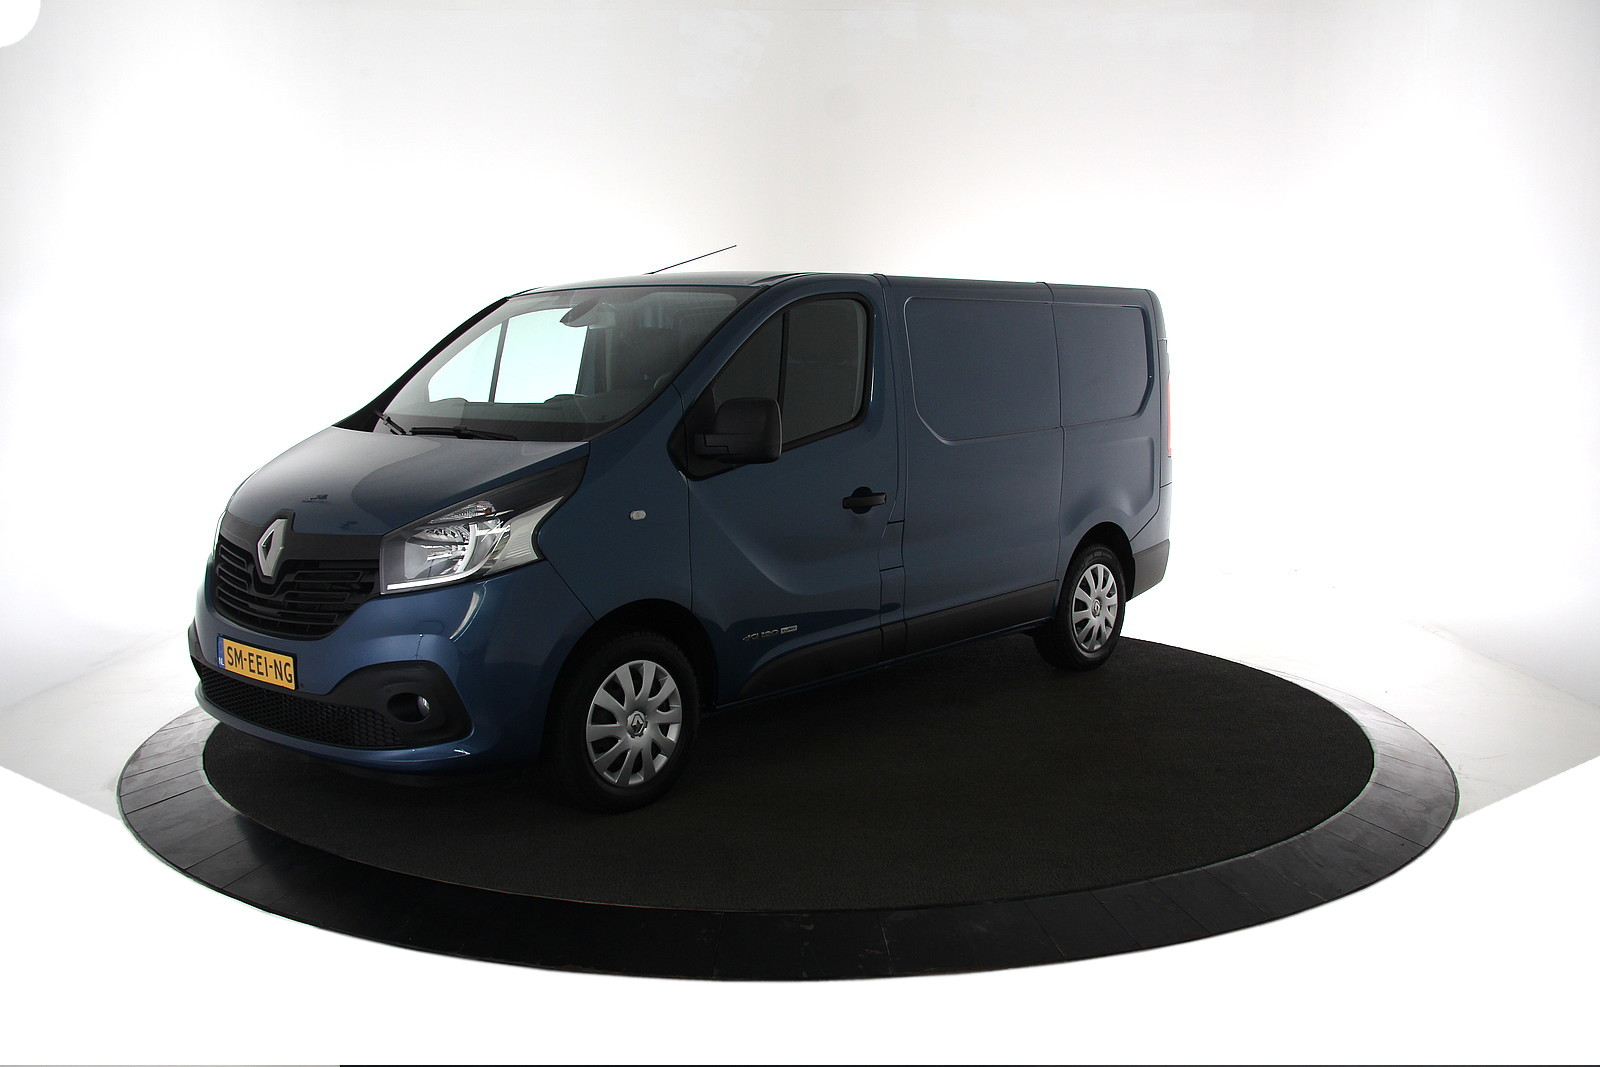 Renault Trafic 1.6 dCi L1H1 3 Persoons